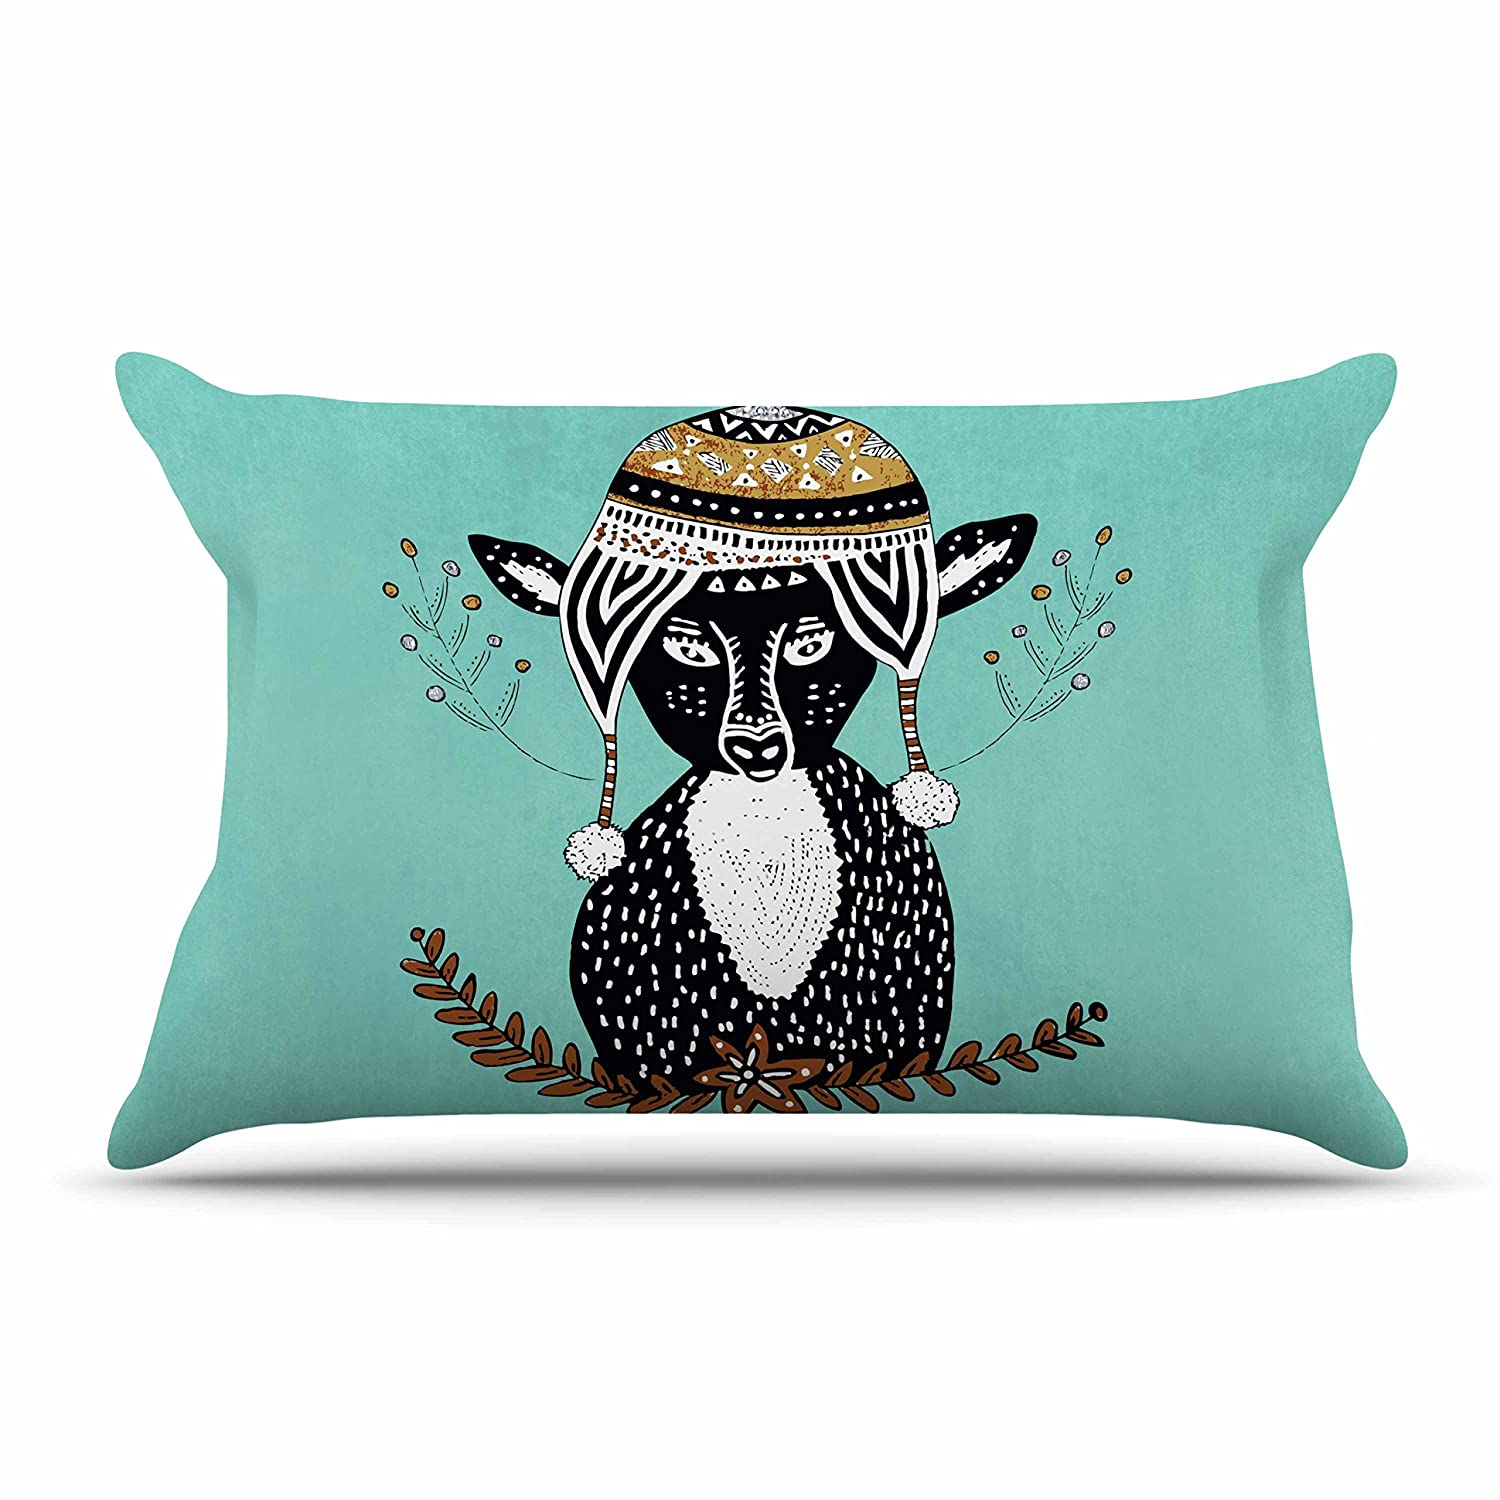 40 x 20 Pillow Sham Kess InHouse Pom Graphic Design Hipster Deer Teal Black Animals Illustration